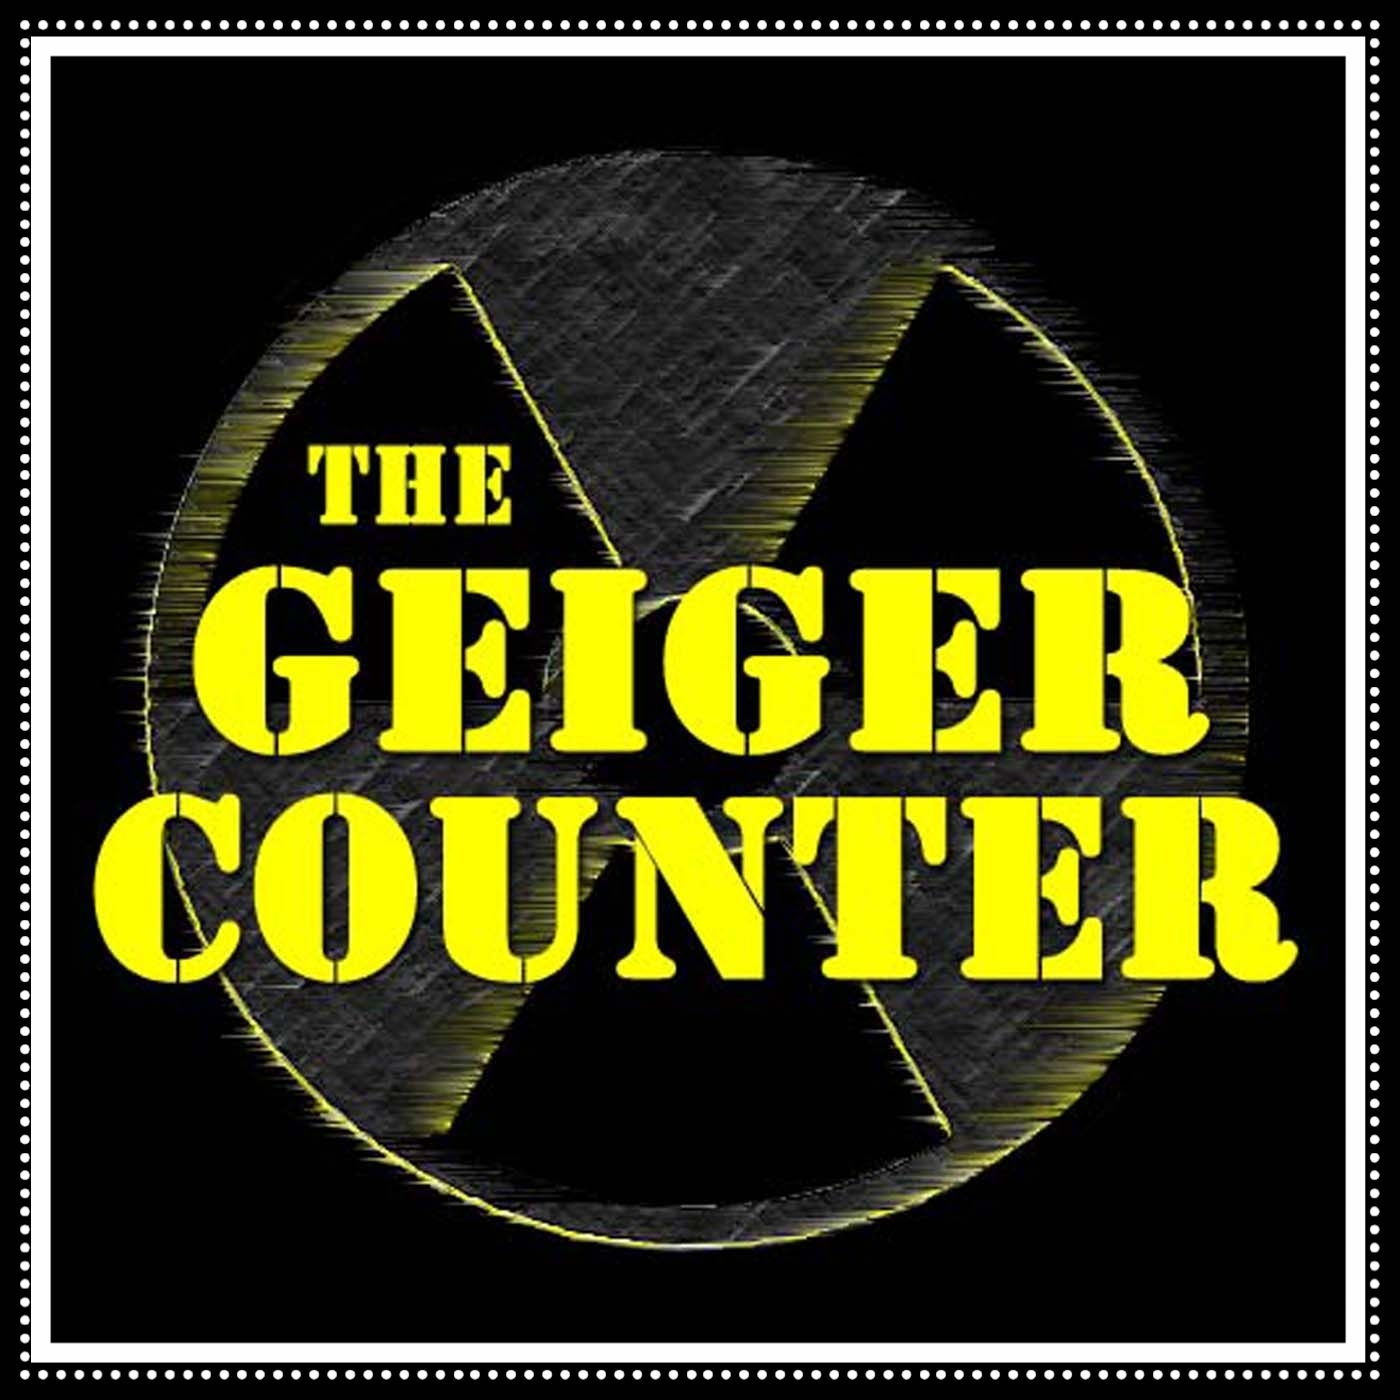 The Geiger Counter